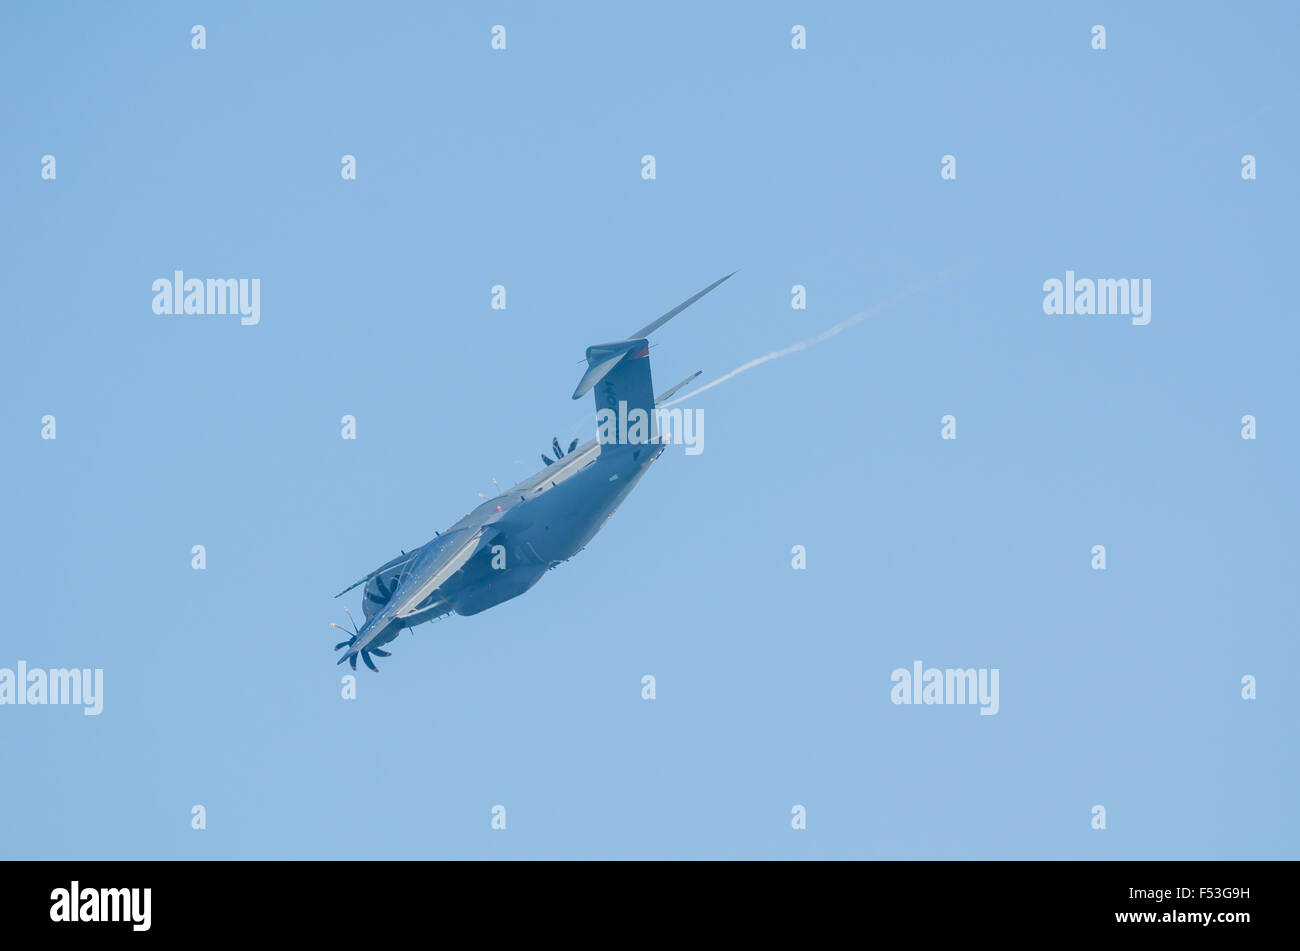 SAN JAVIER, SPAIN, OCTOBER18, 2015: Low pass of an Airbus A400M airlifter at the air show celebrating Spains Patulla - Stock Image